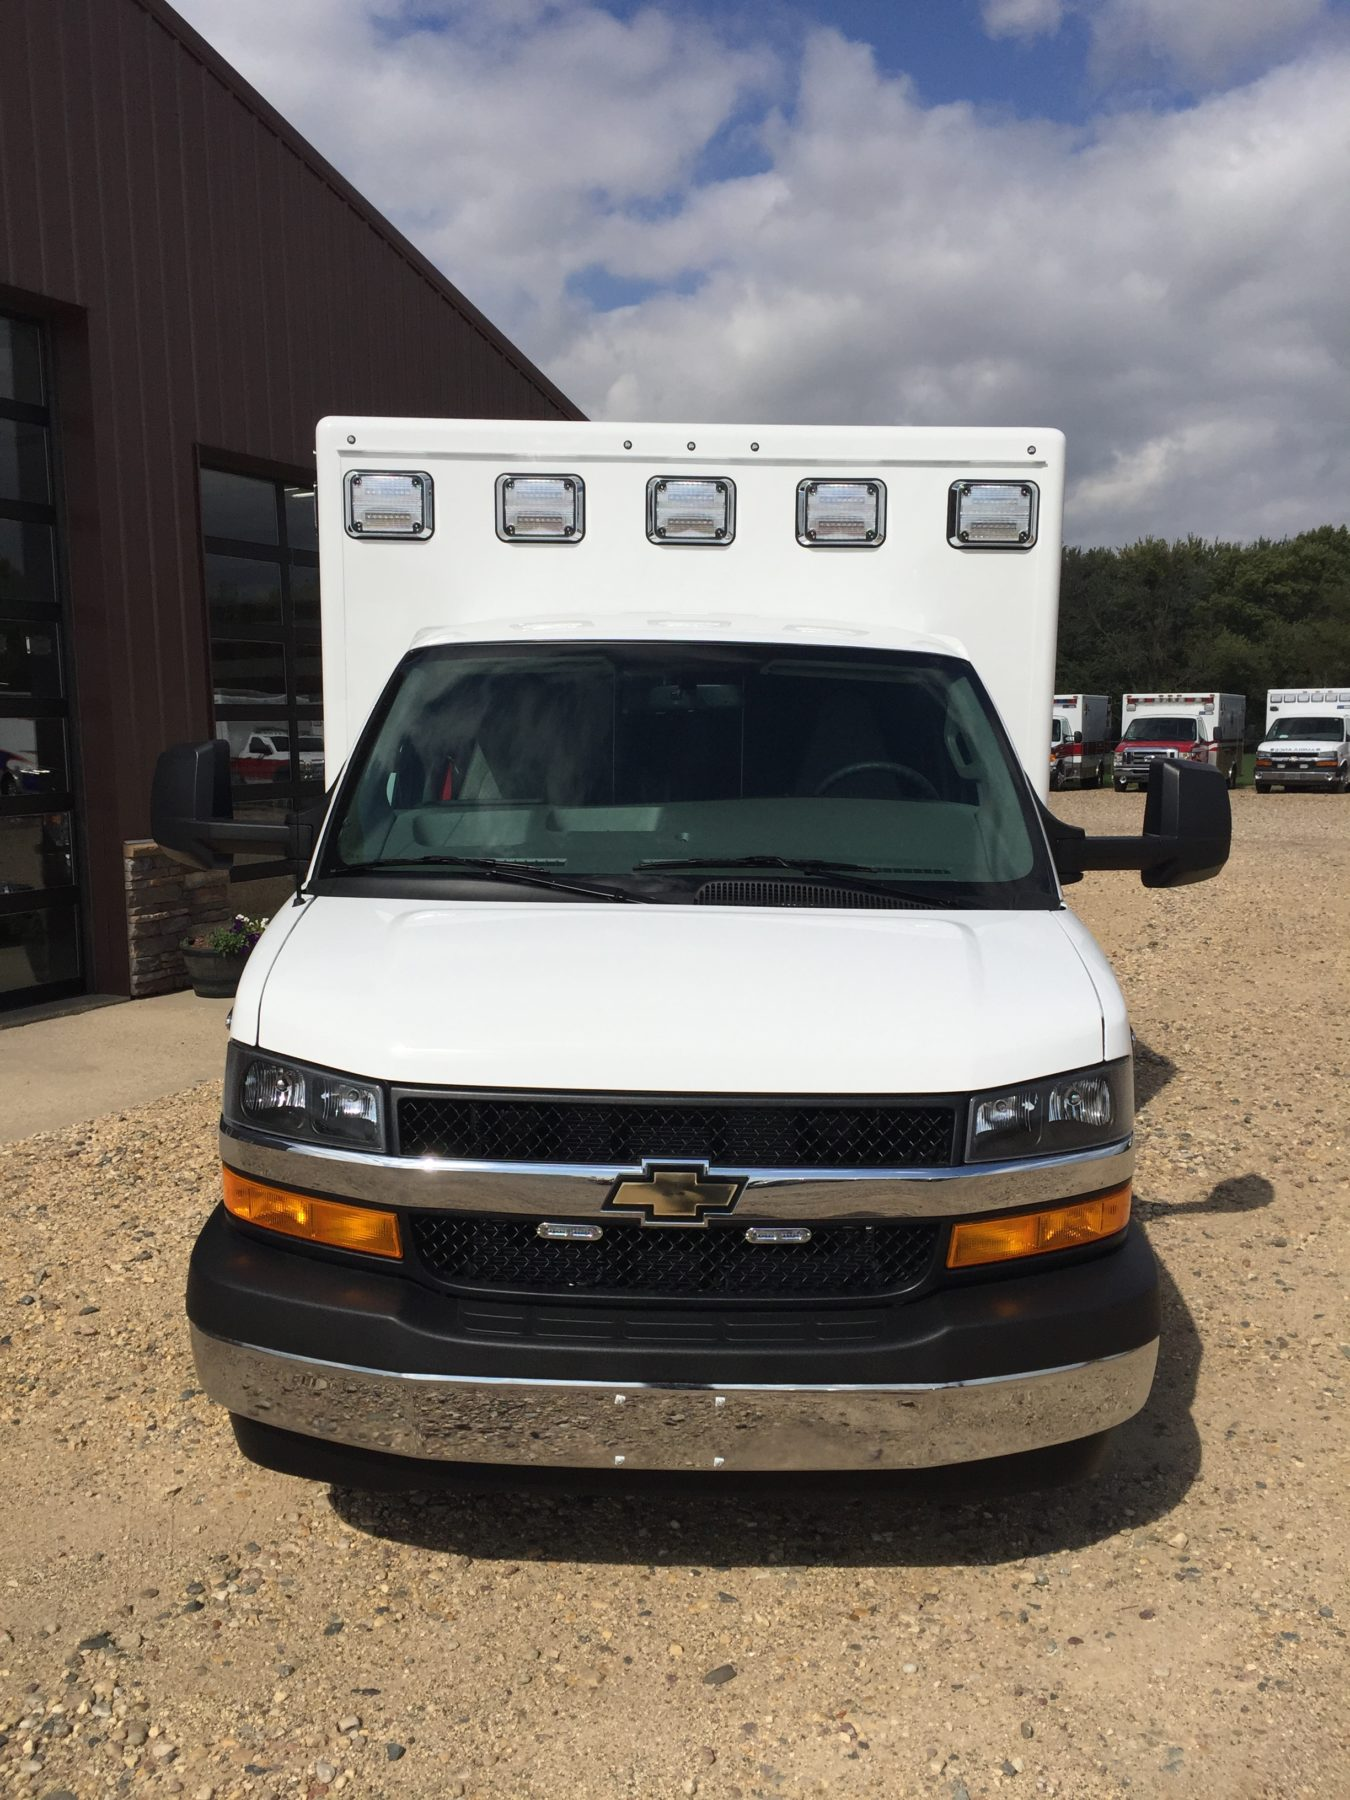 2019 Chevrolet G4500 Type 3 Ambulance For Sale – Picture 7